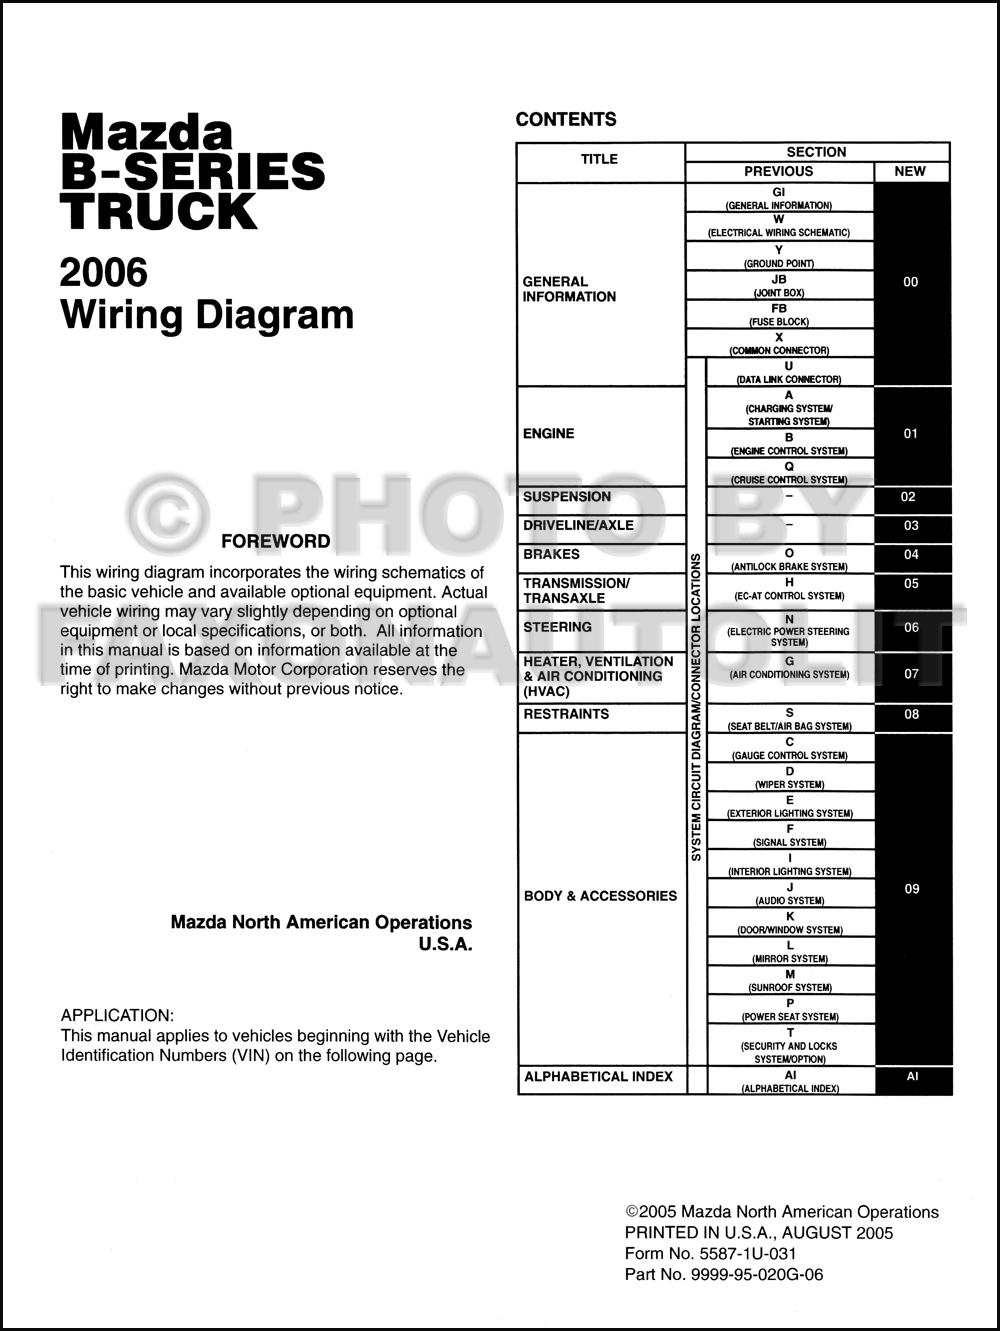 2006 mazda b series pickup truck wiring diagram manual. Black Bedroom Furniture Sets. Home Design Ideas